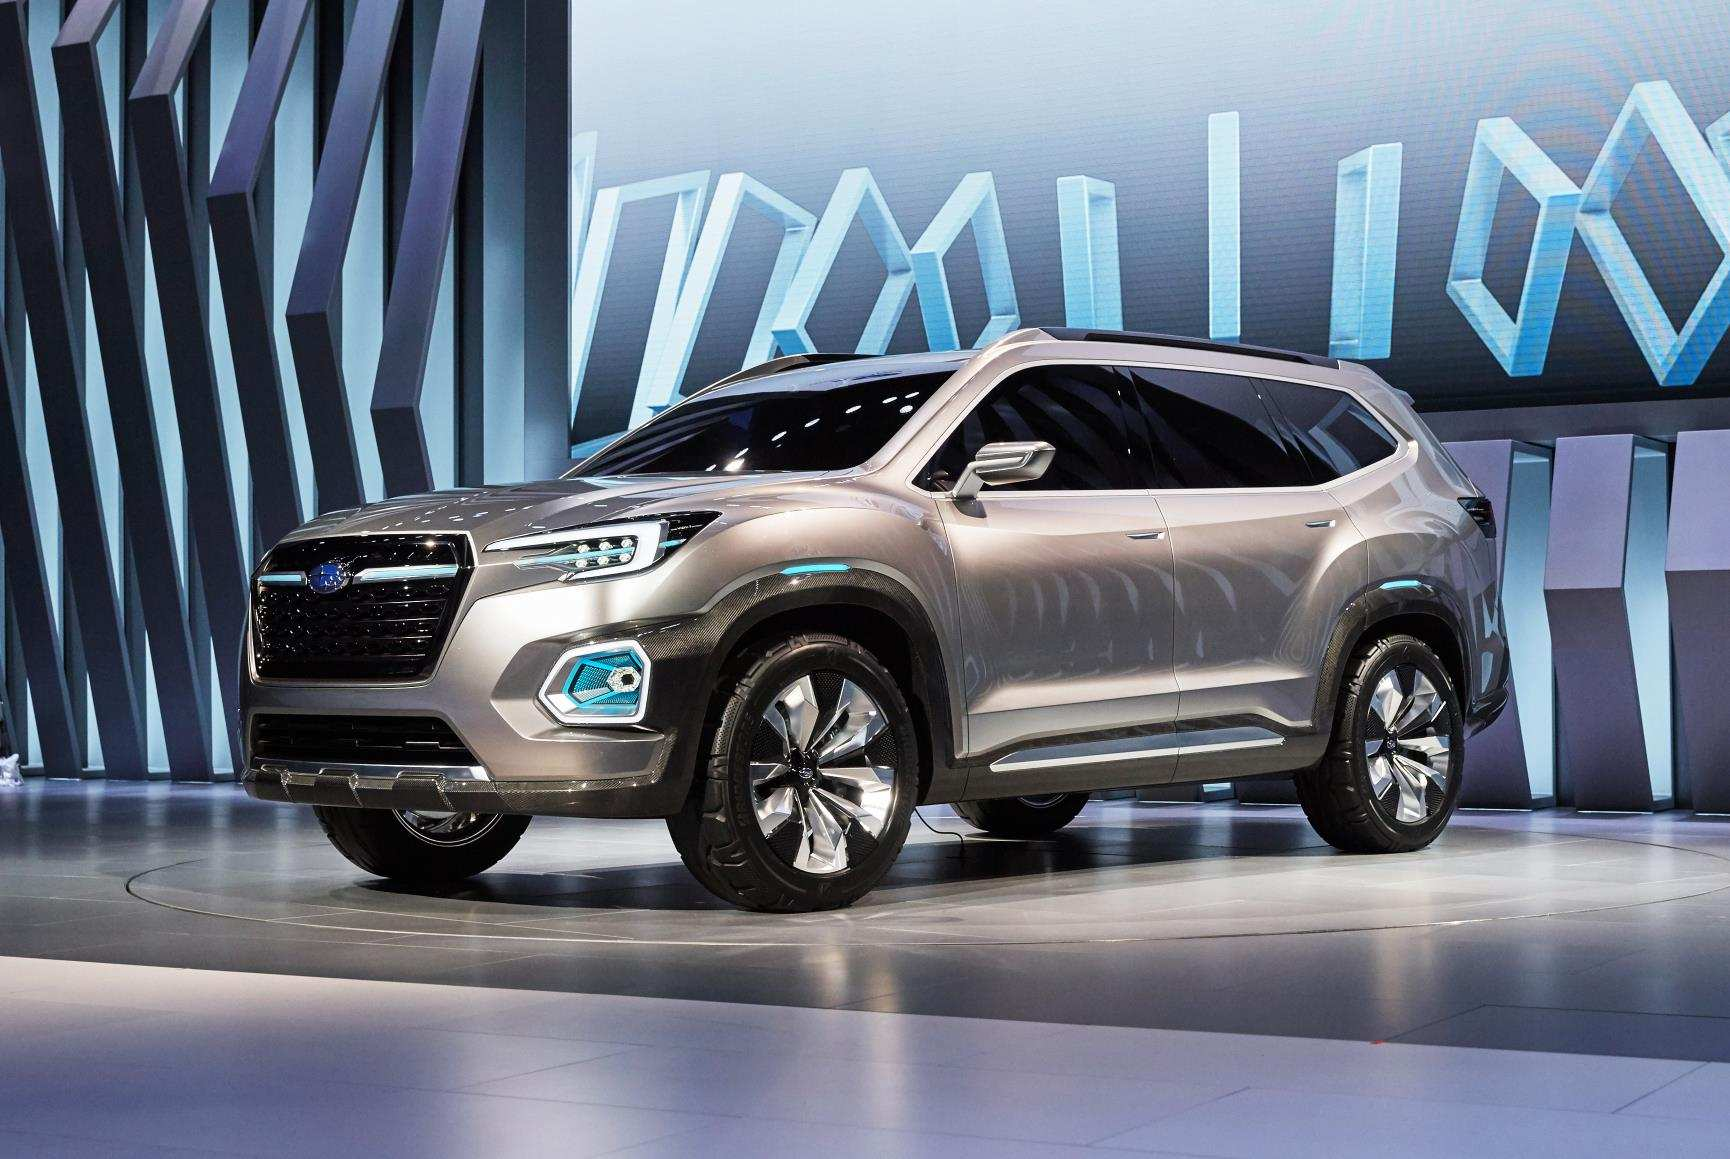 95 Great 2019 Subaru 7 Seater Research New with 2019 Subaru 7 Seater